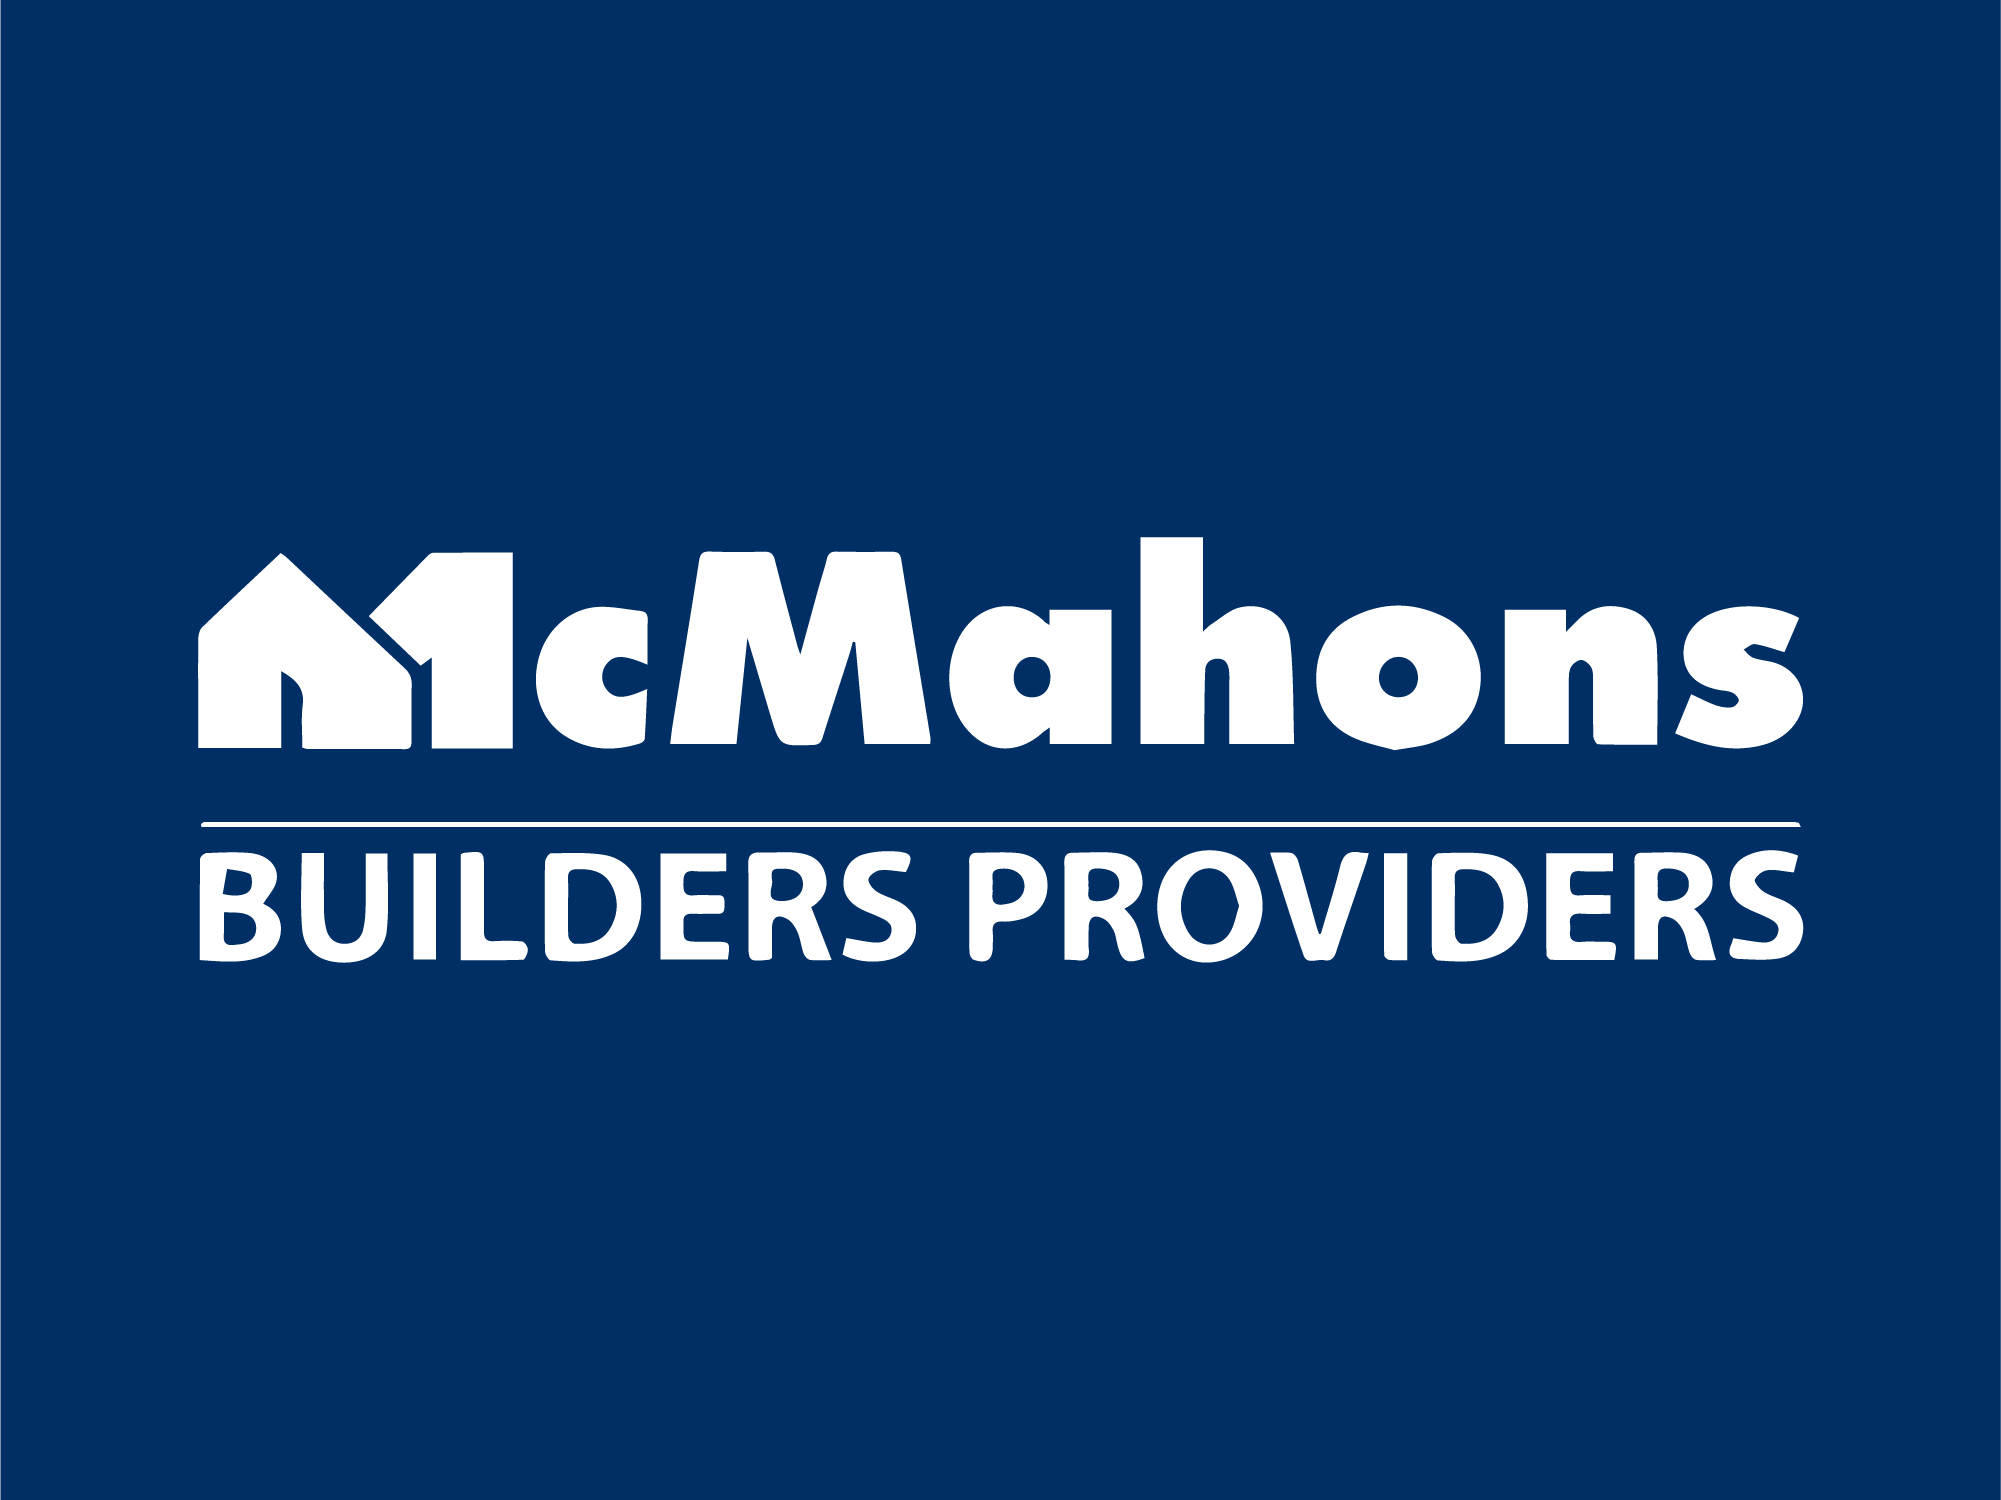 McMahons - Group Refinancing